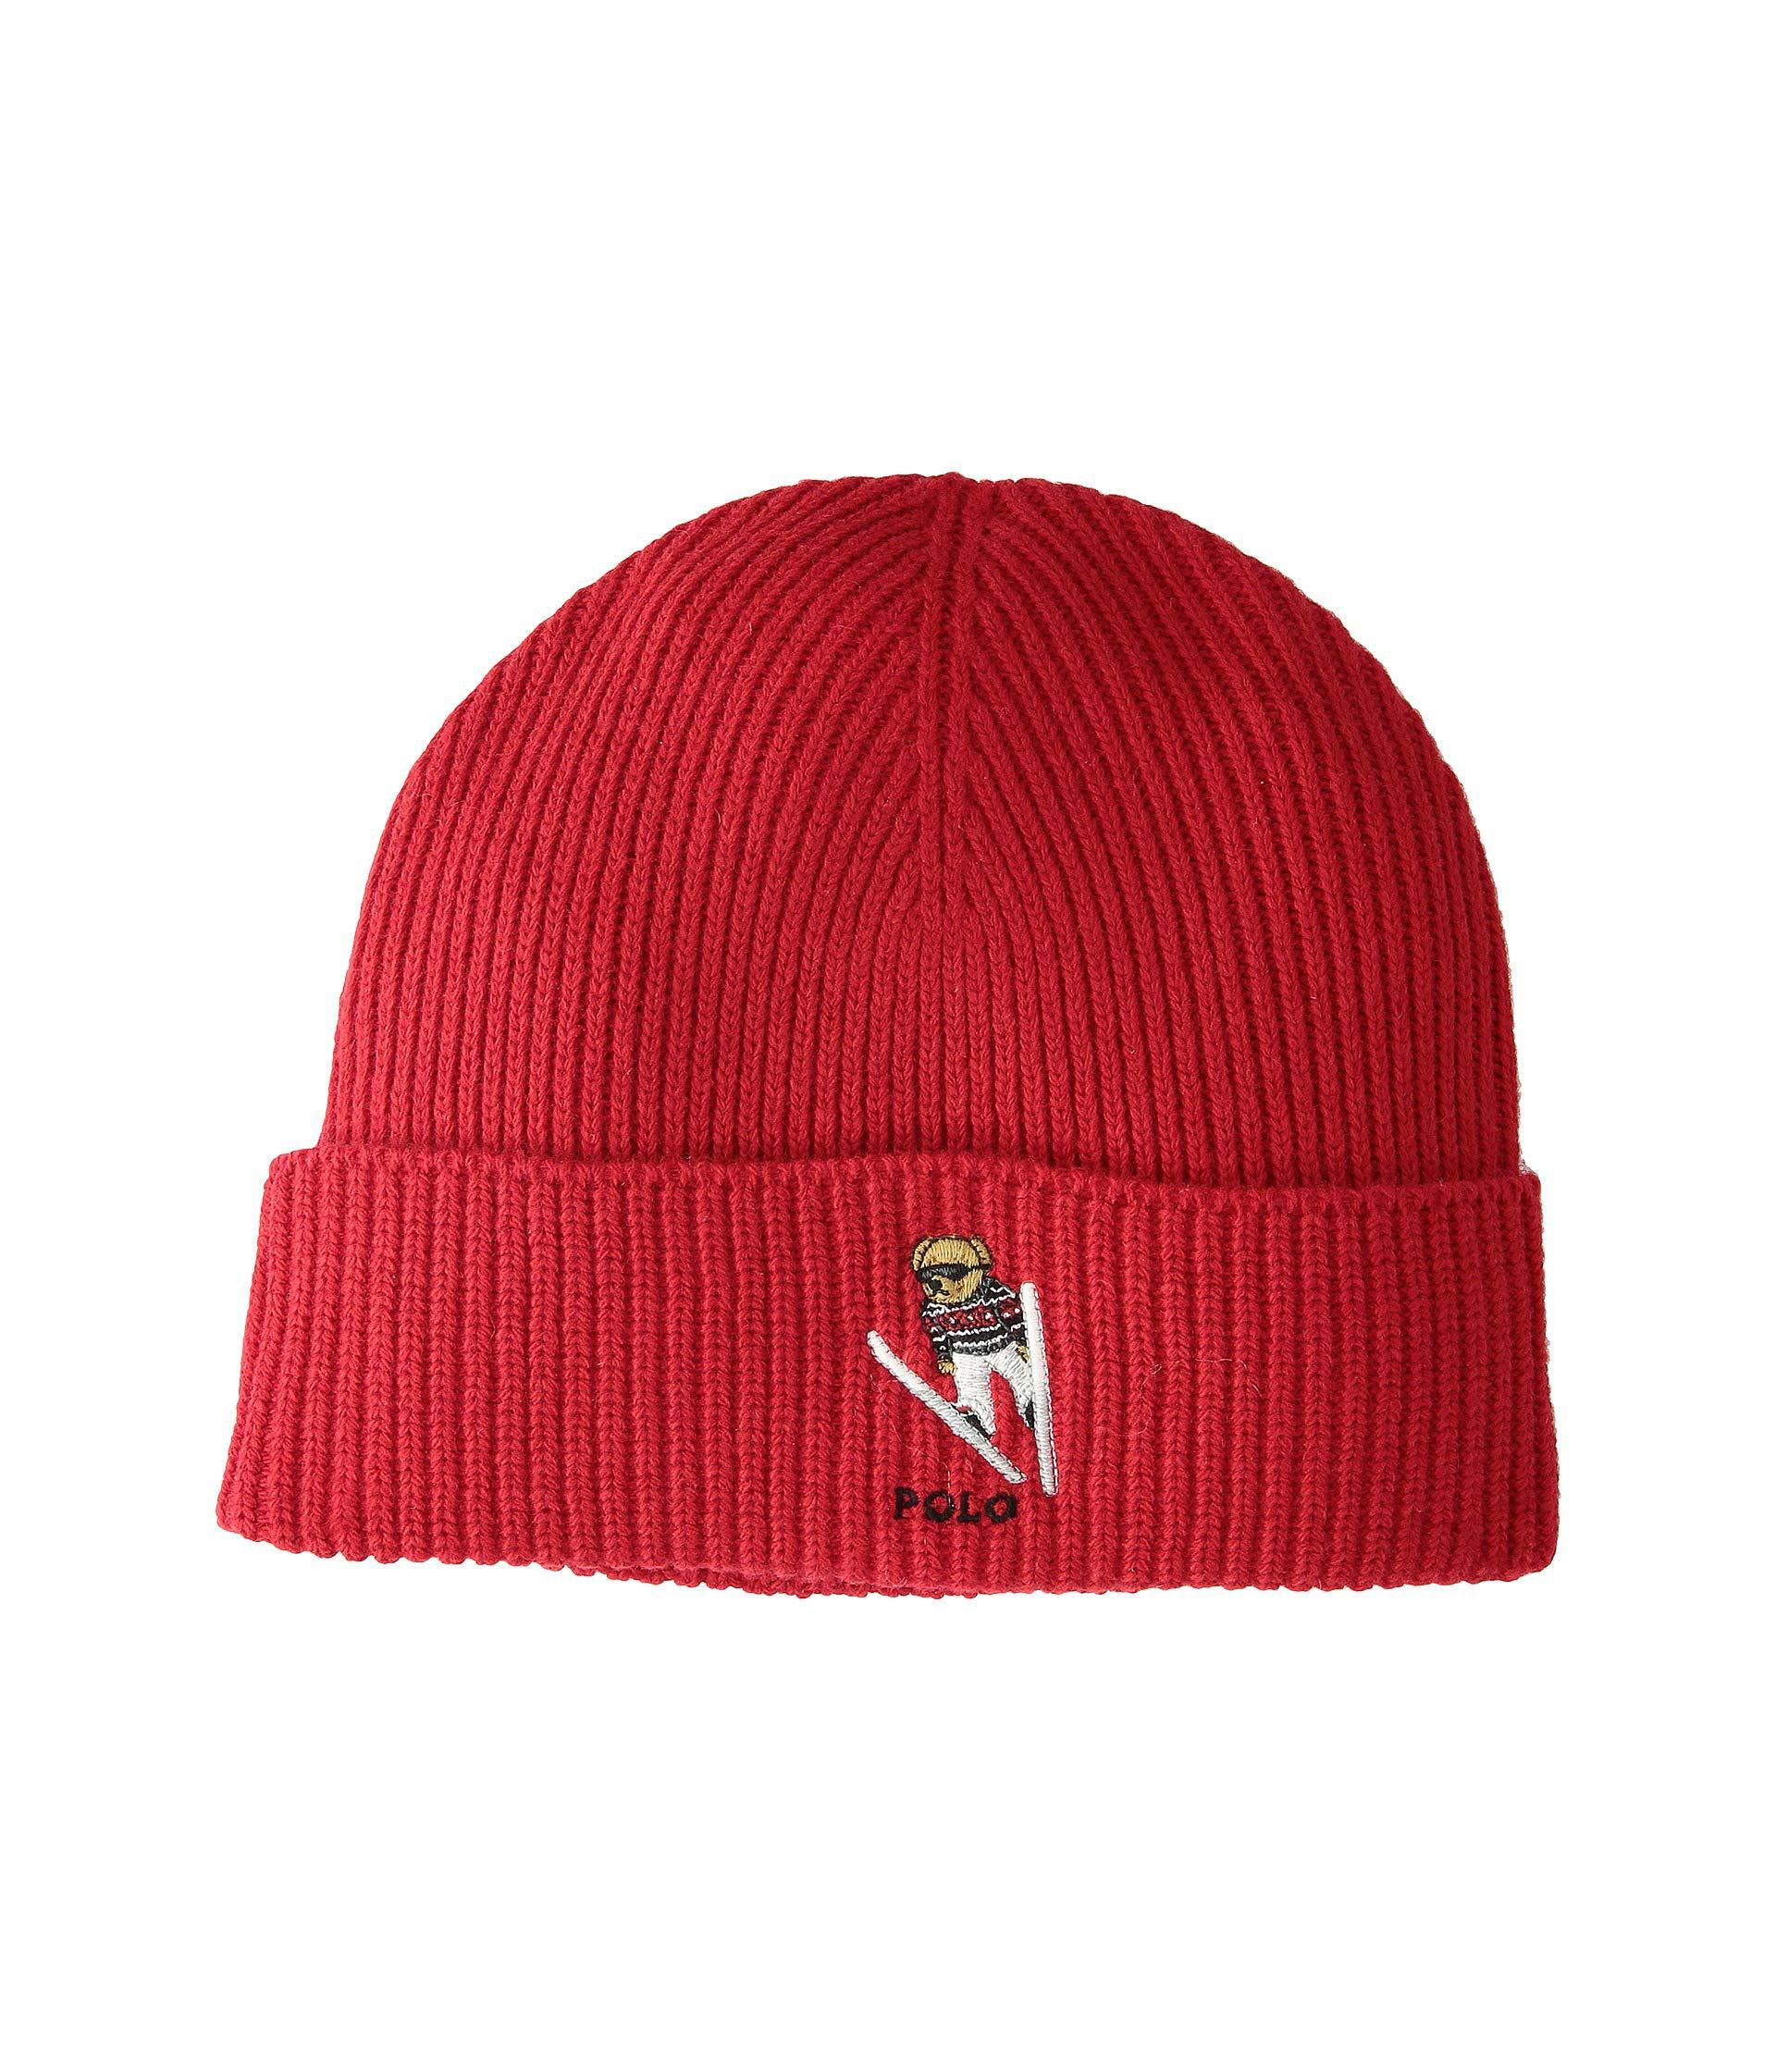 73e3dc50e4d8a Lyst - Polo Ralph Lauren Skier Bear Cuff Hat (black) Beanies in Red ...